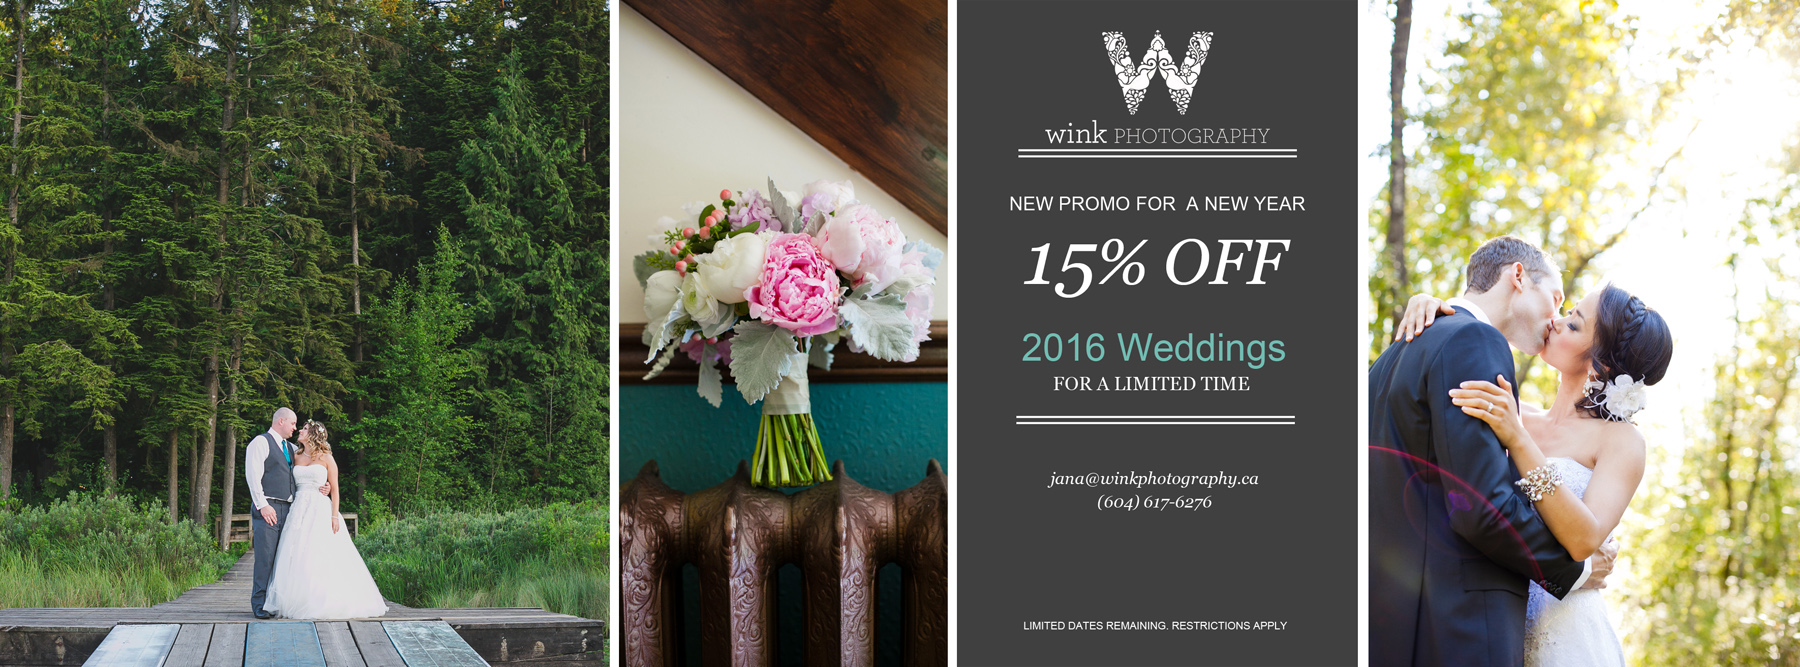 2016 Wedding Promo by Vancouver Wedding Photography Wink Photography